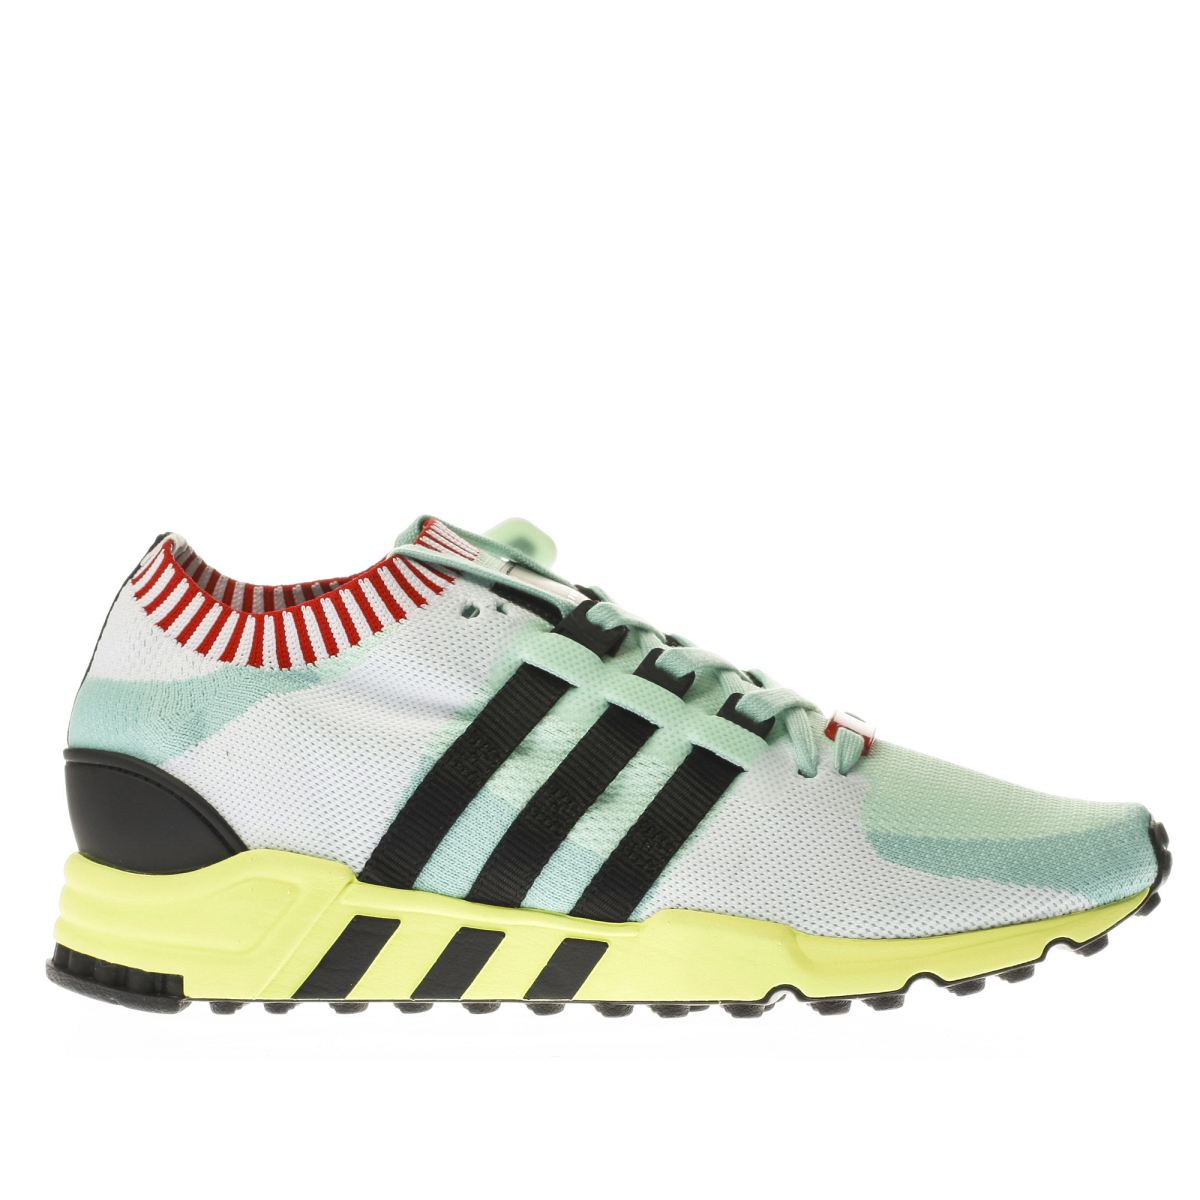 adidas white & mint green eqt support rf primeknit trainers